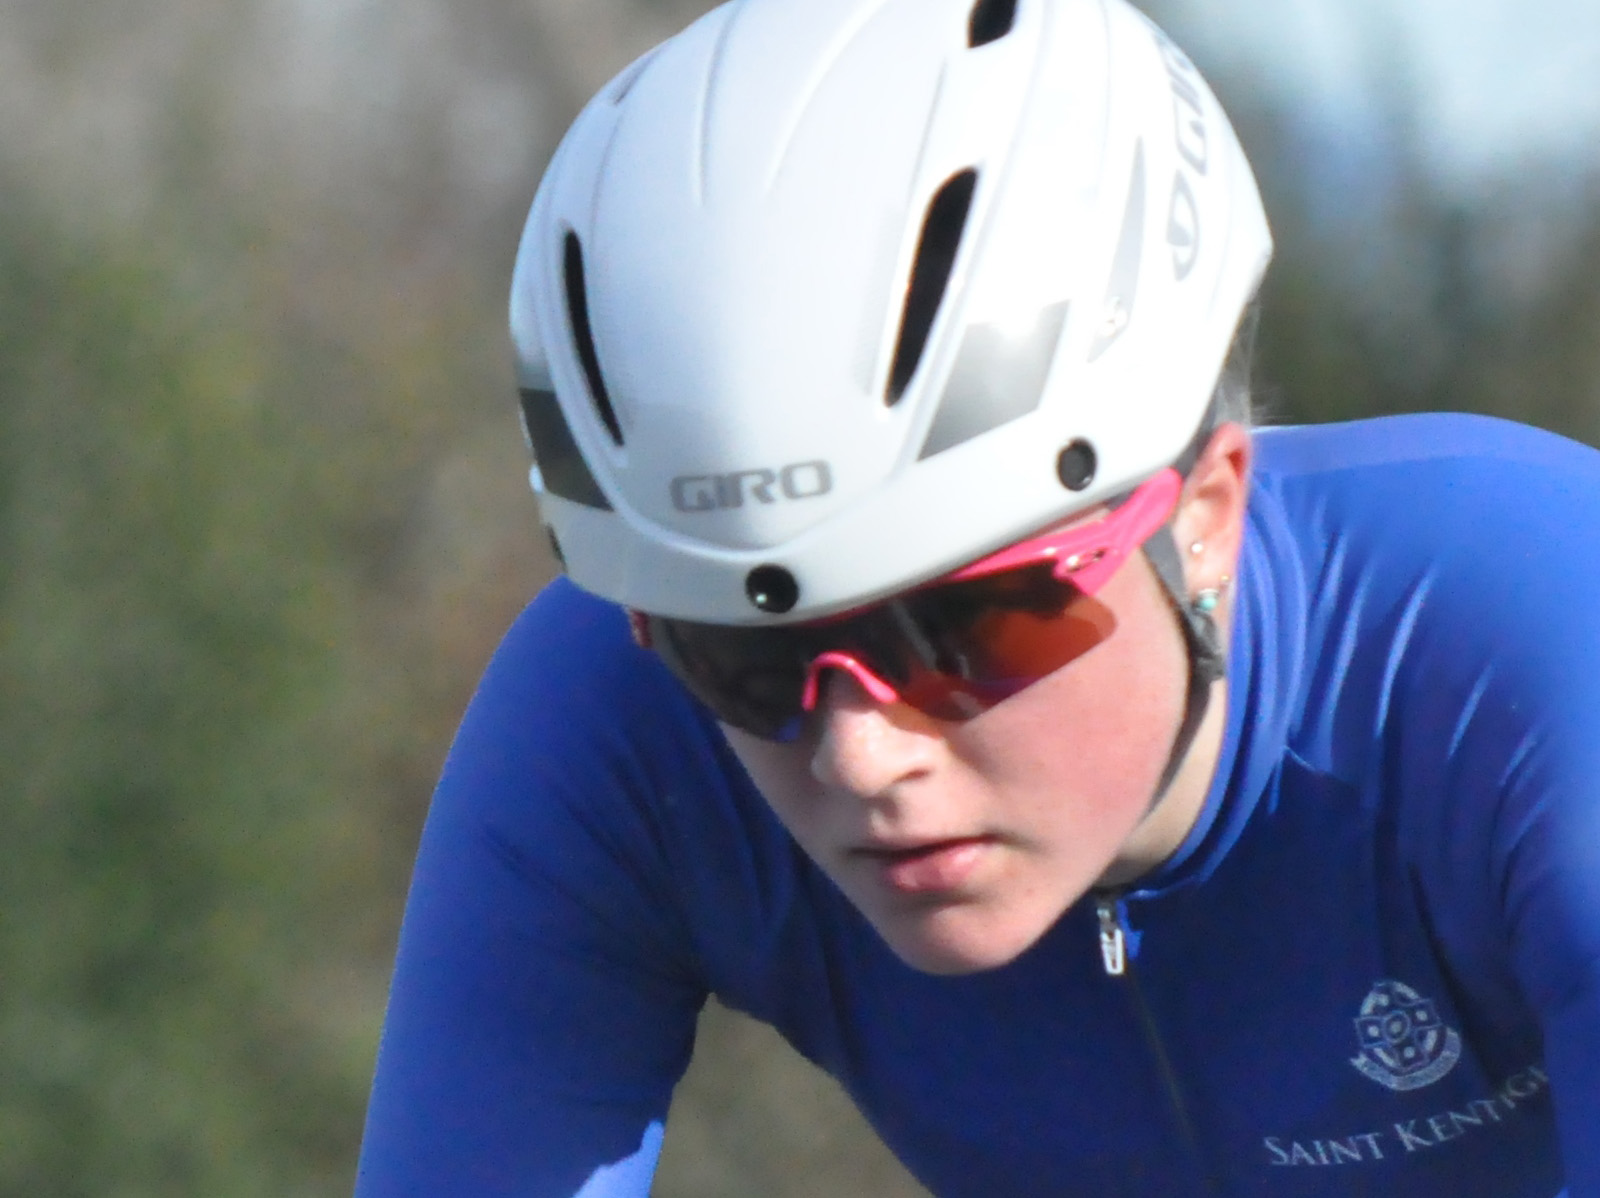 World Championships Beckon Again for College Student